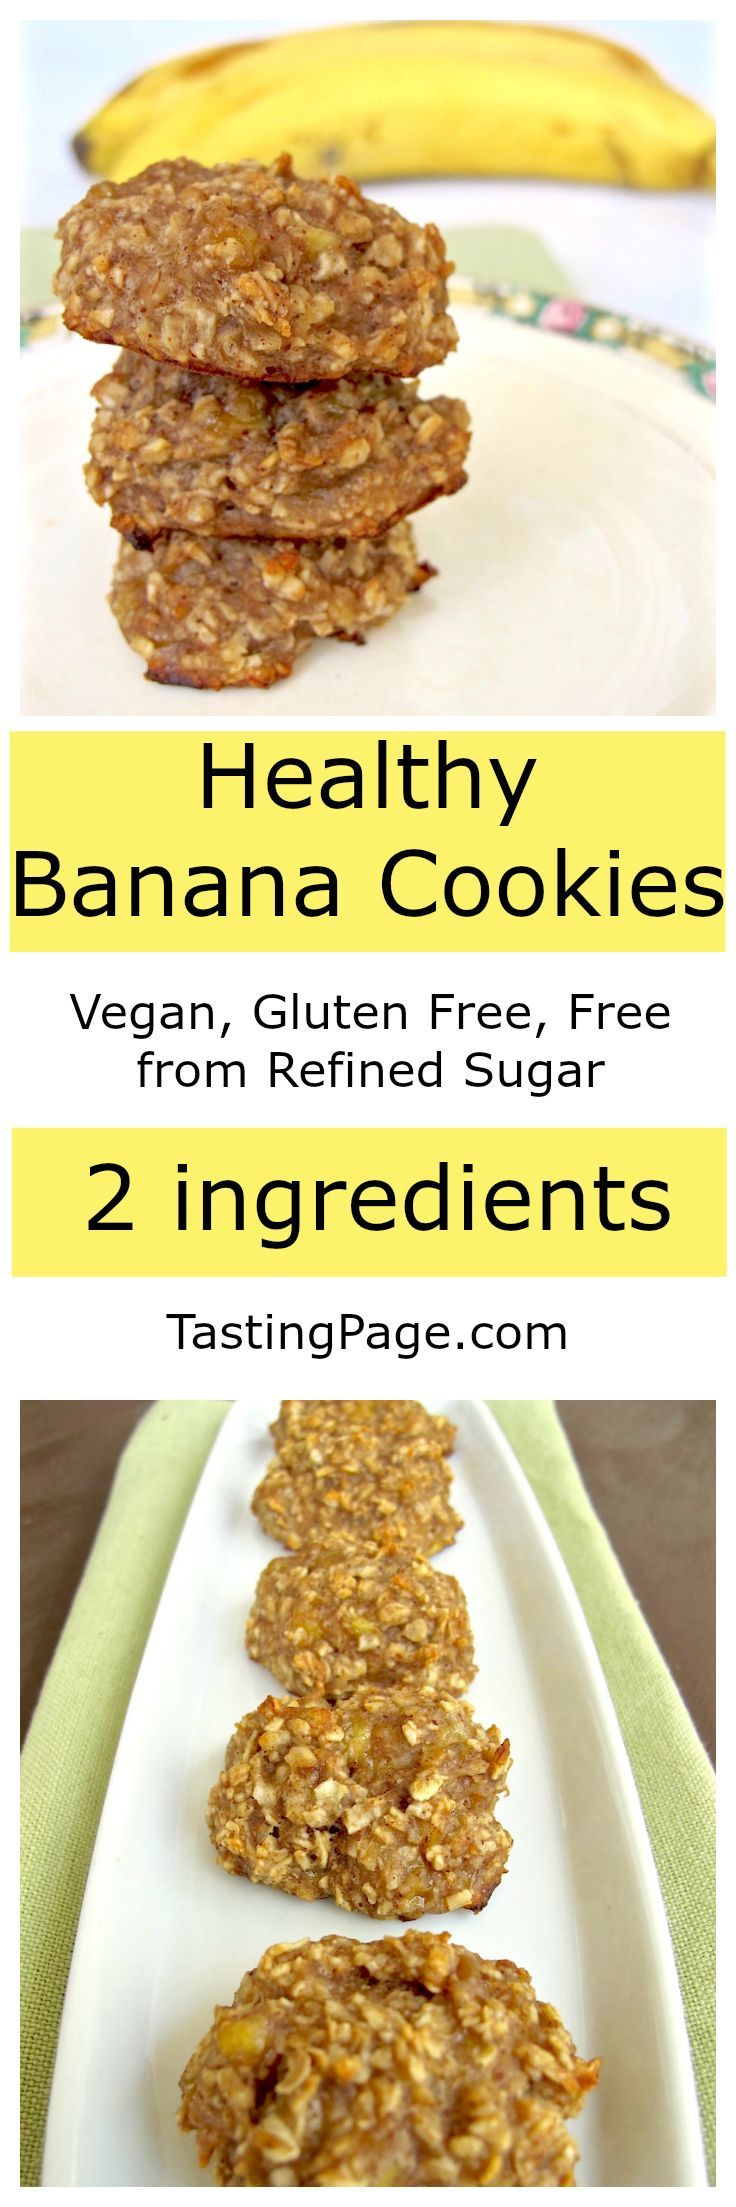 Healthy Banana Cookies - Vegan, gluten free, free from refined sugar | TastingPage.com